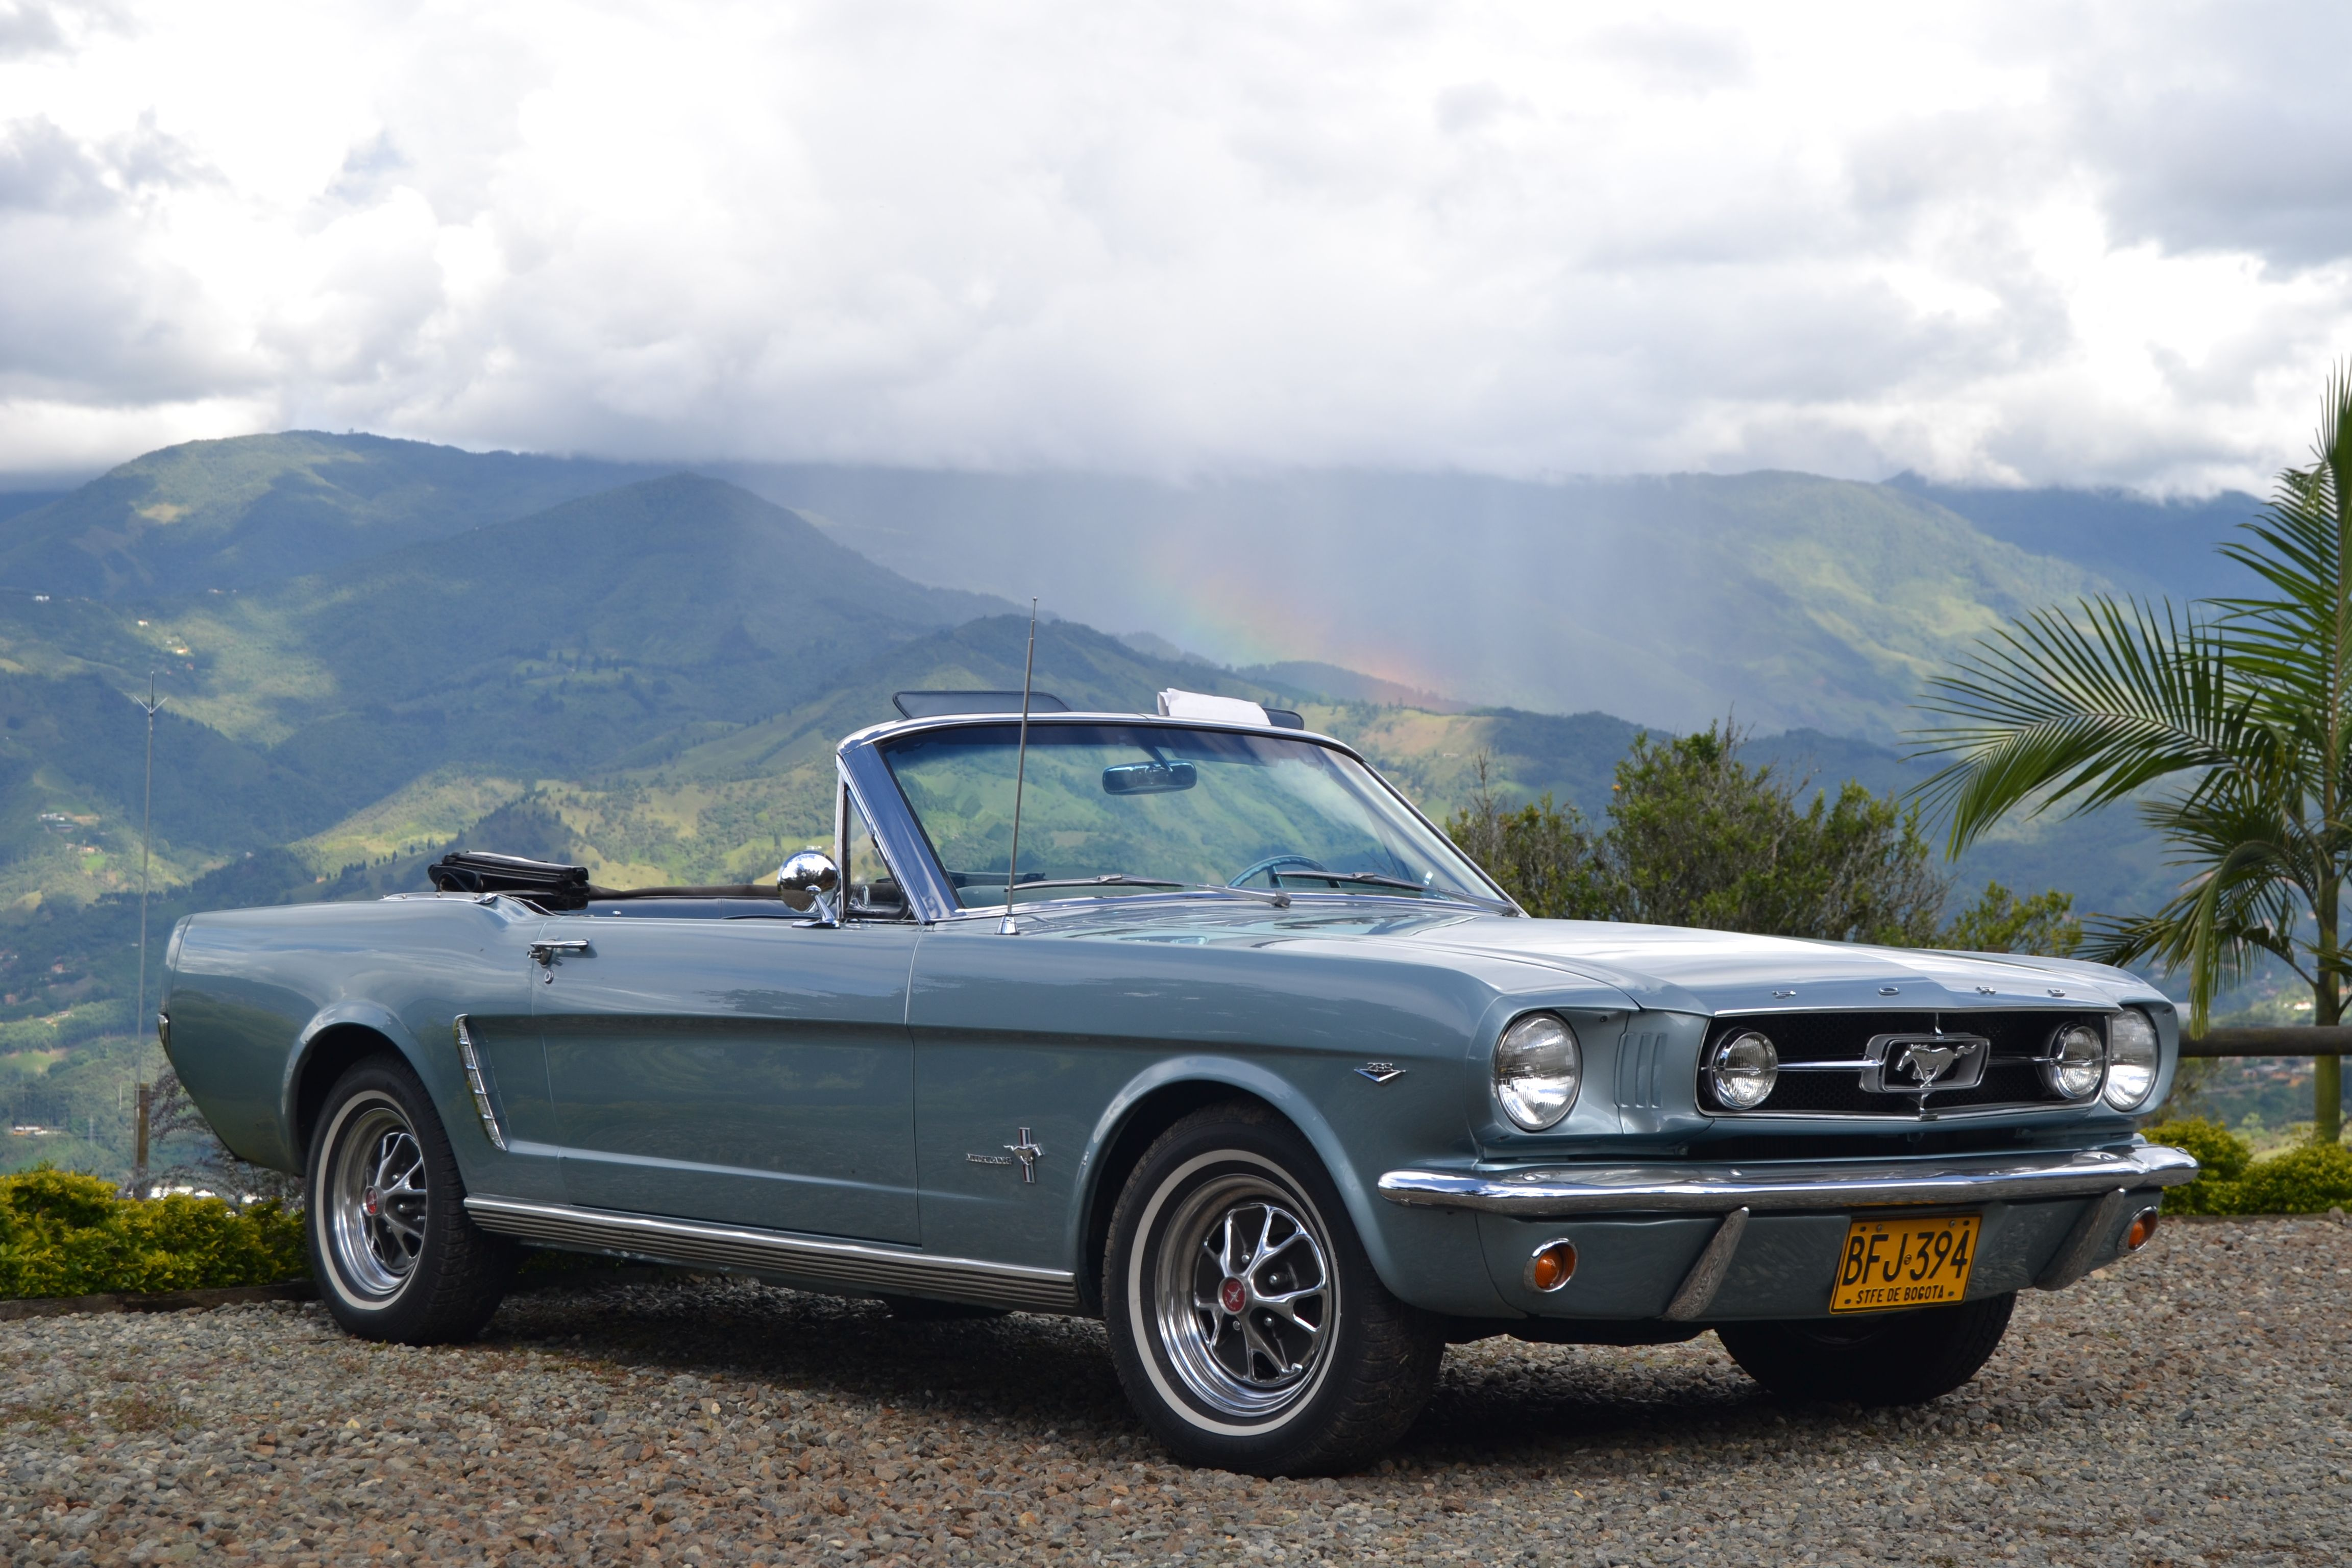 65 Mustang Parts >> Francsico V S Turquoise 65 Mustang Lives In Colombia All The Way